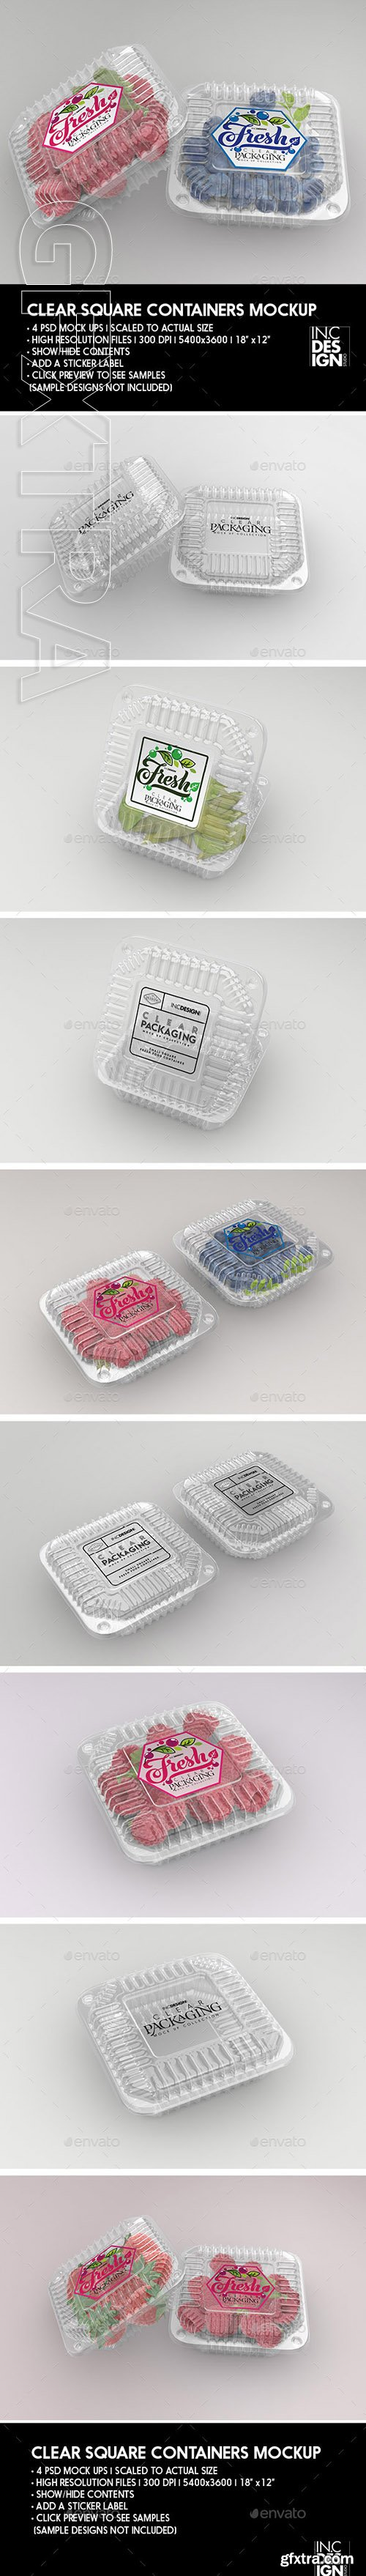 GR - Clear Square Clamshell Food Container Packaging Mockup 22066960